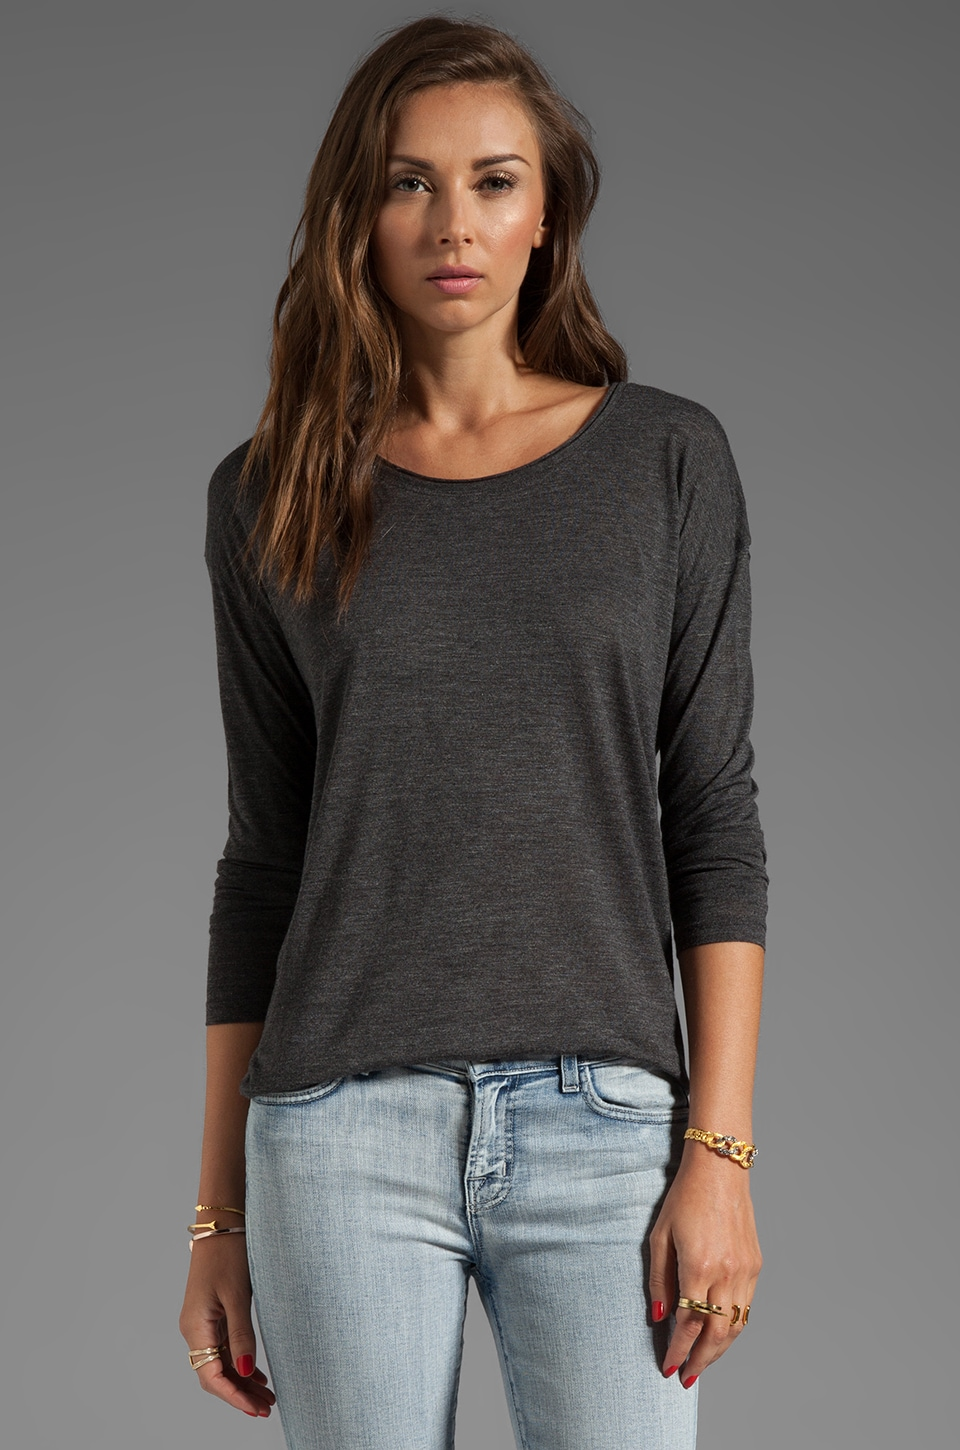 Vince Rolled Neck Long Sleeve in Heather Black